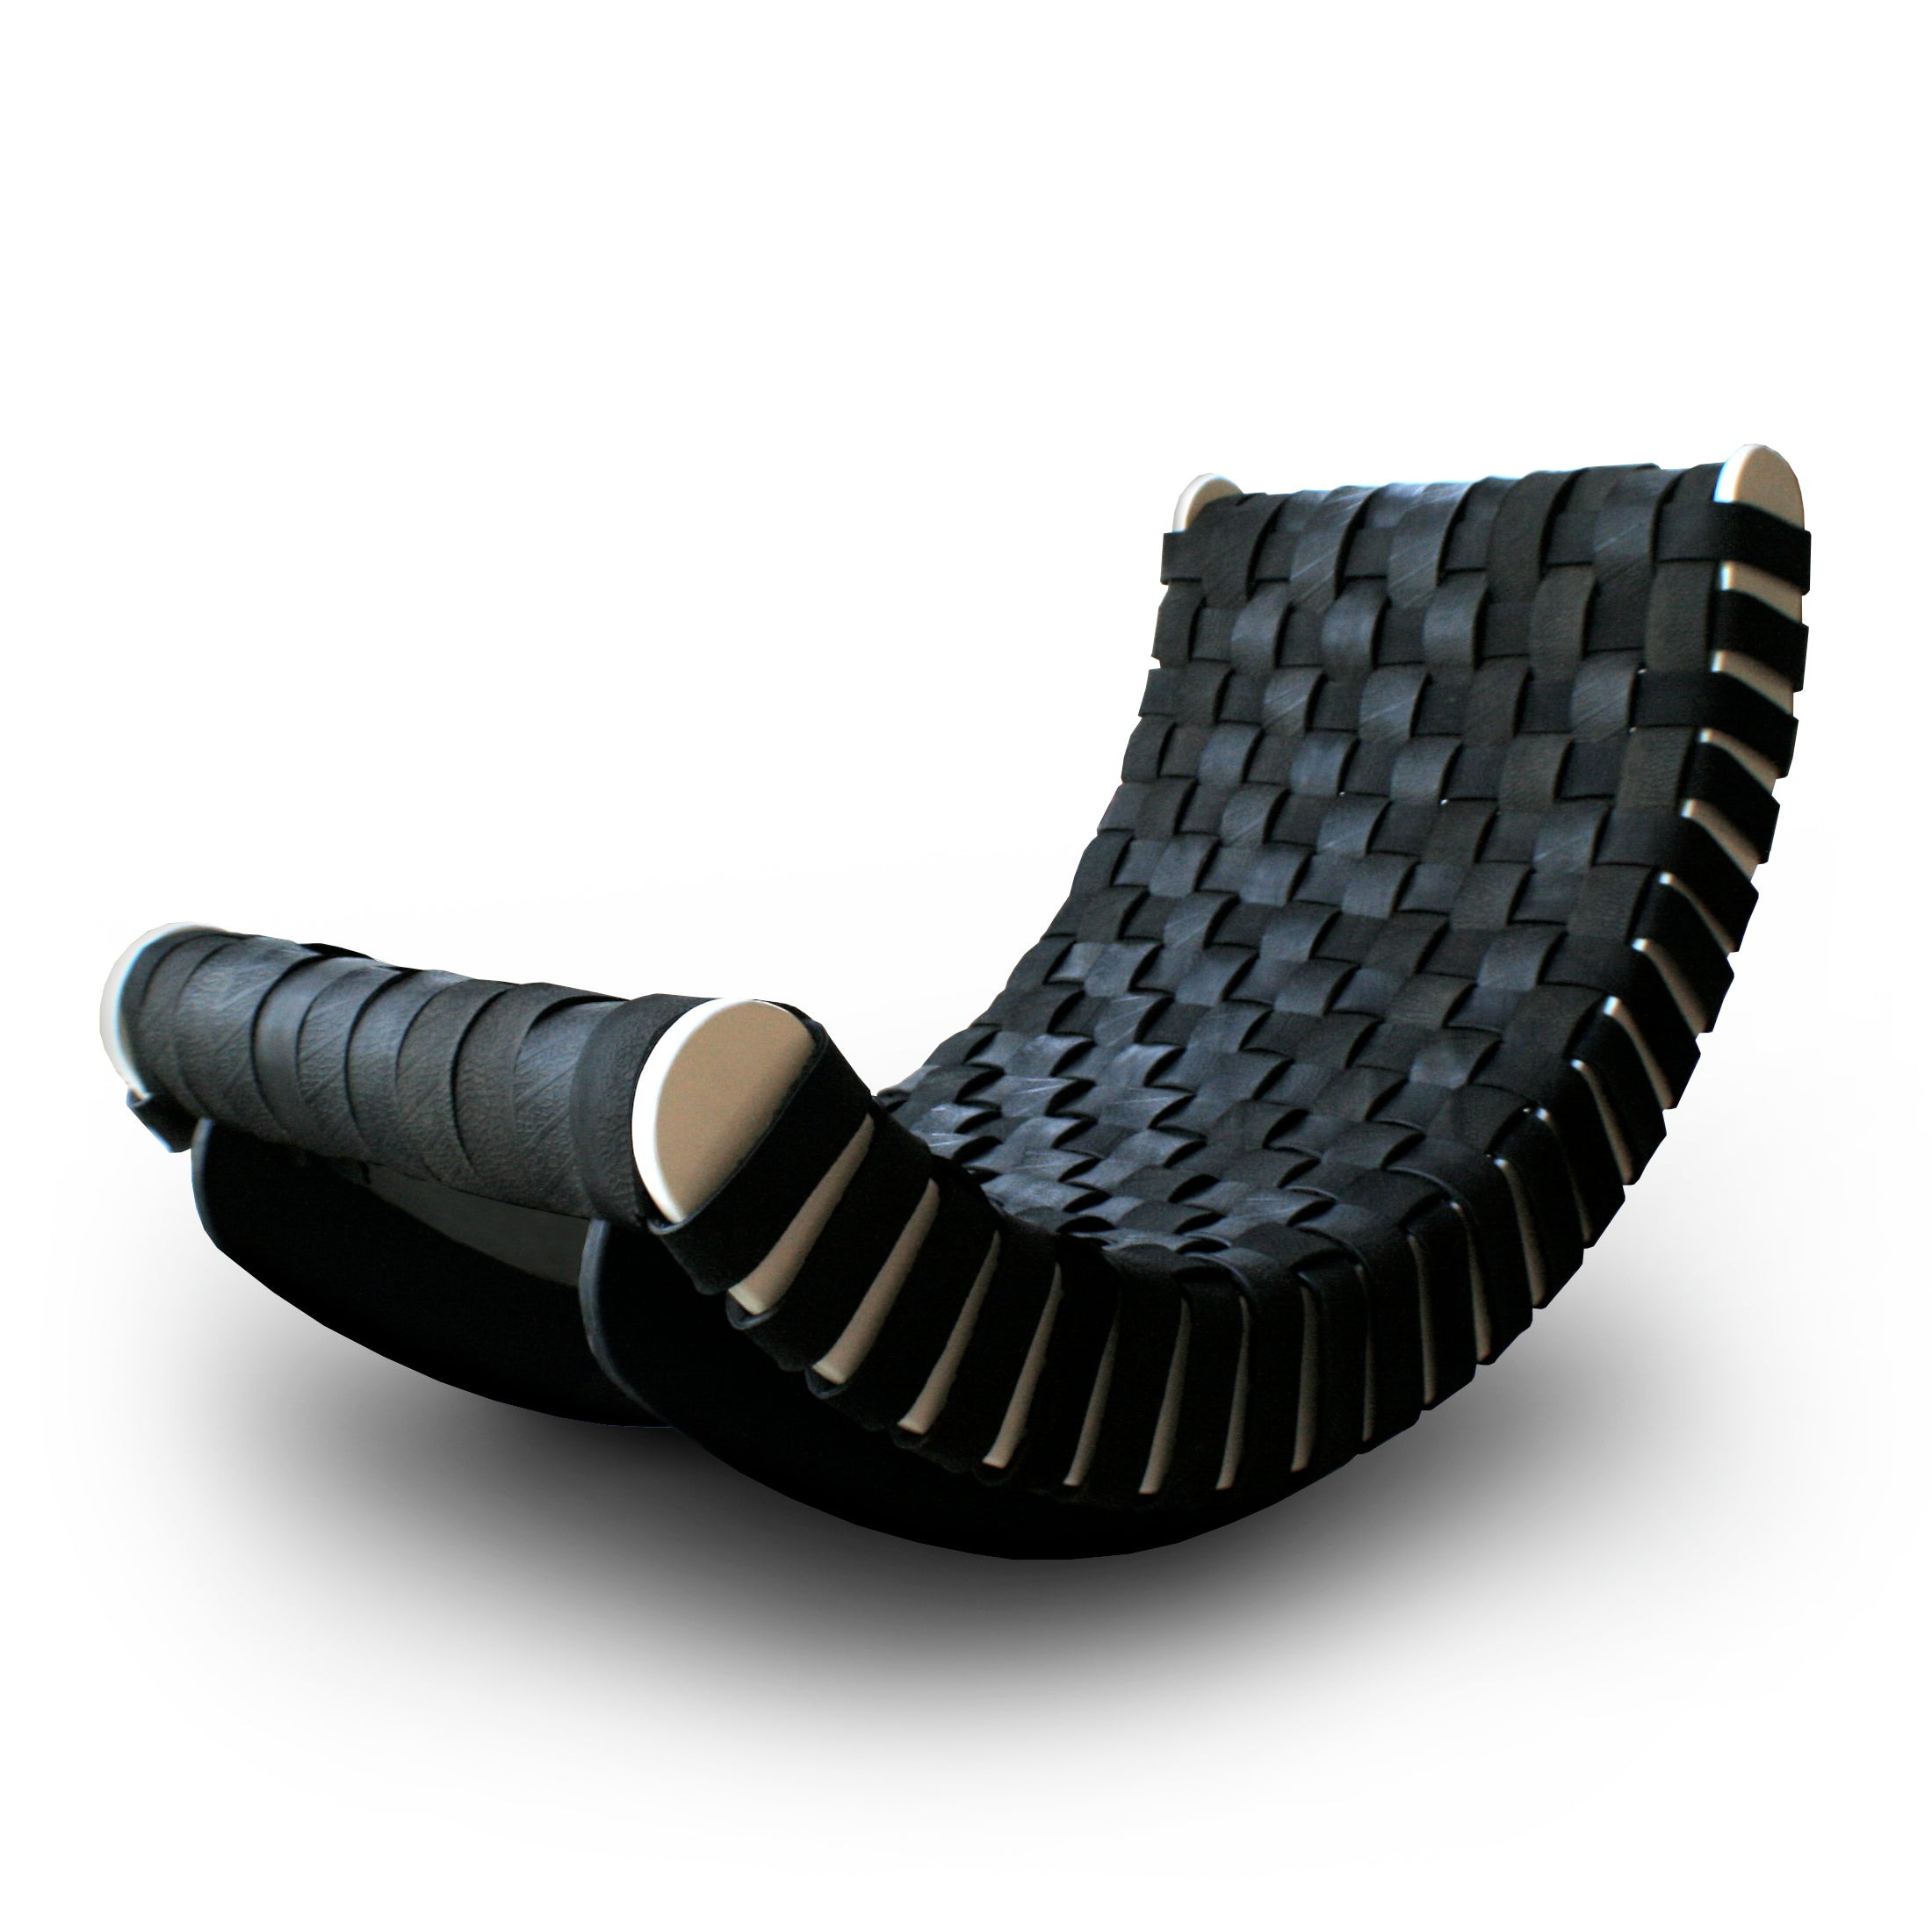 LKD Tired Lounge Chair